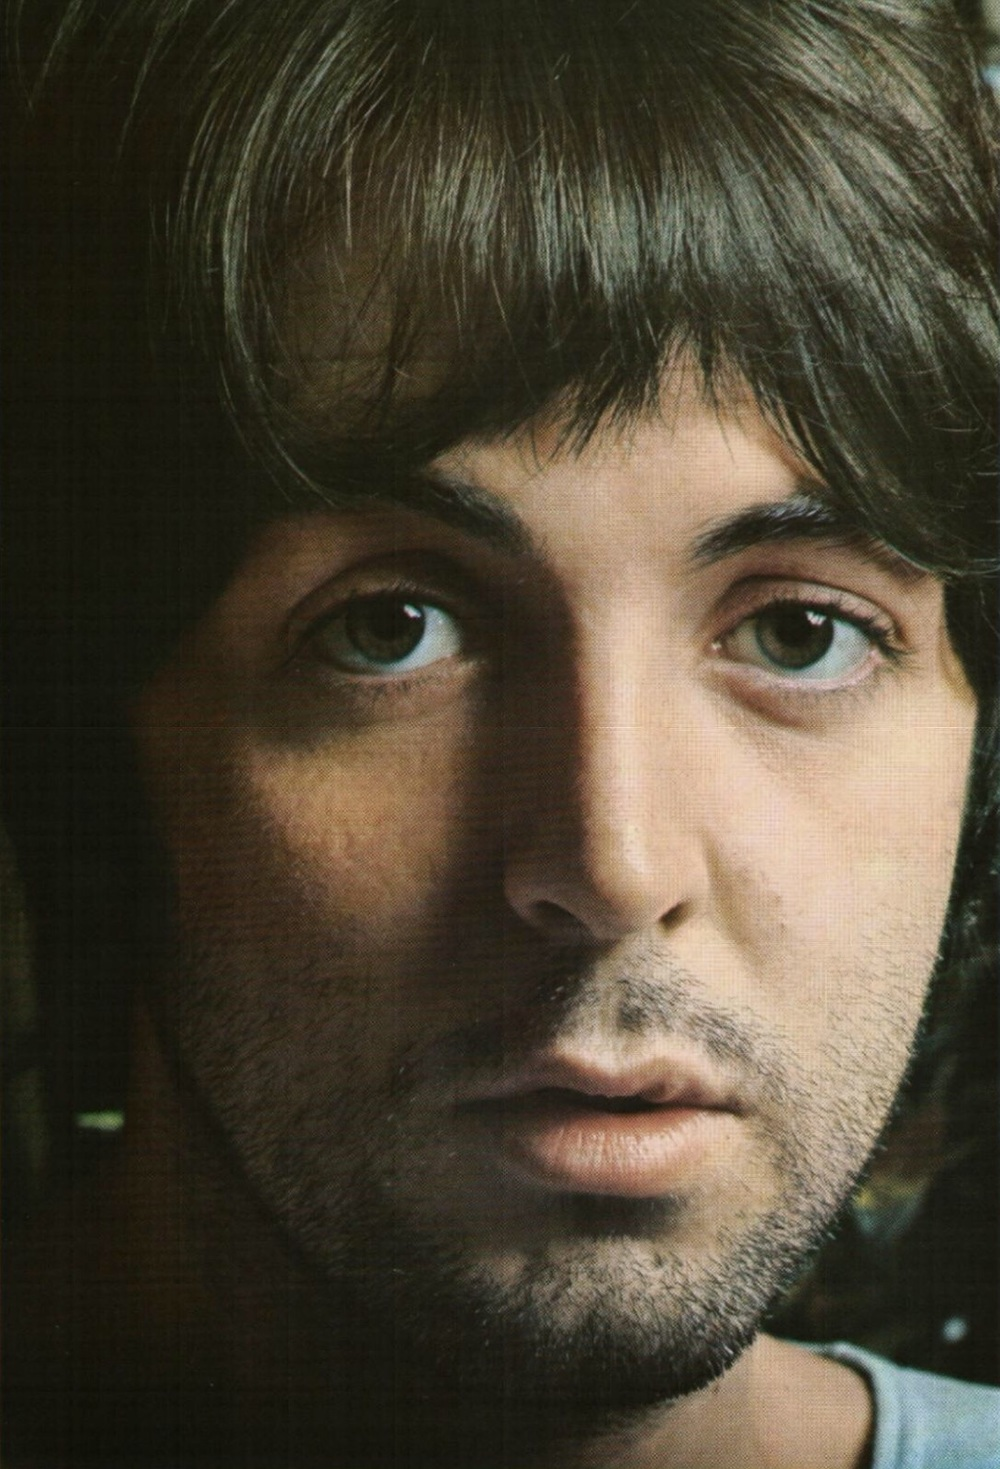 Paul McCartney photographed for the White Album, 1968.